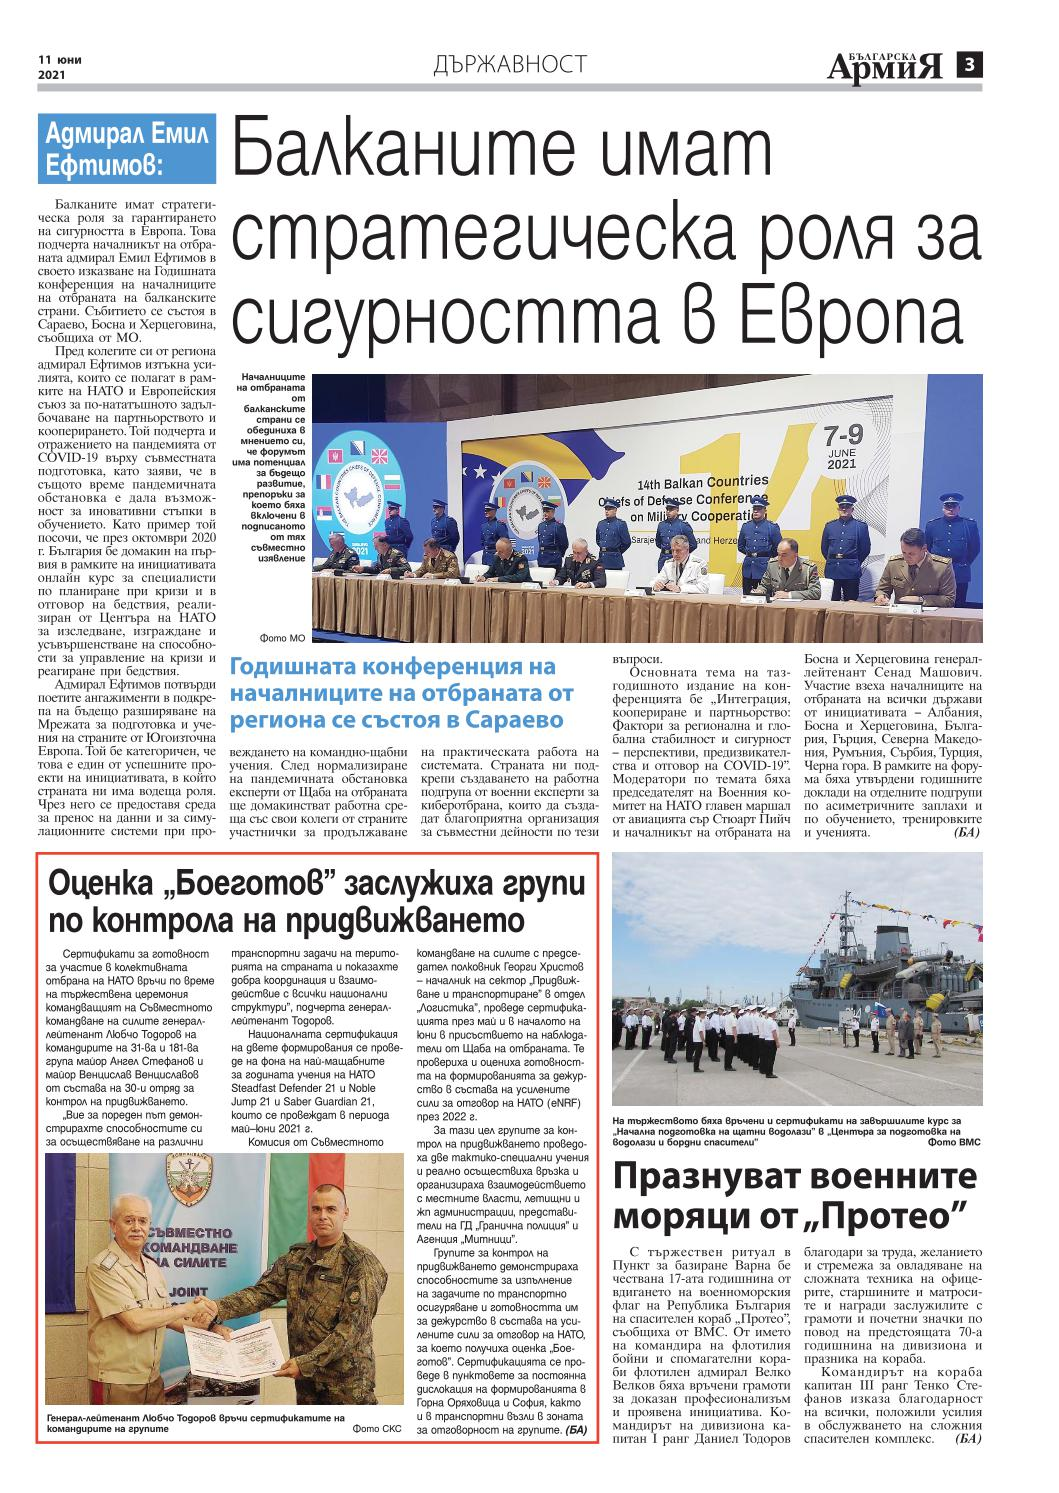 https://armymedia.bg/wp-content/uploads/2021/06/03.page1_-1.jpg